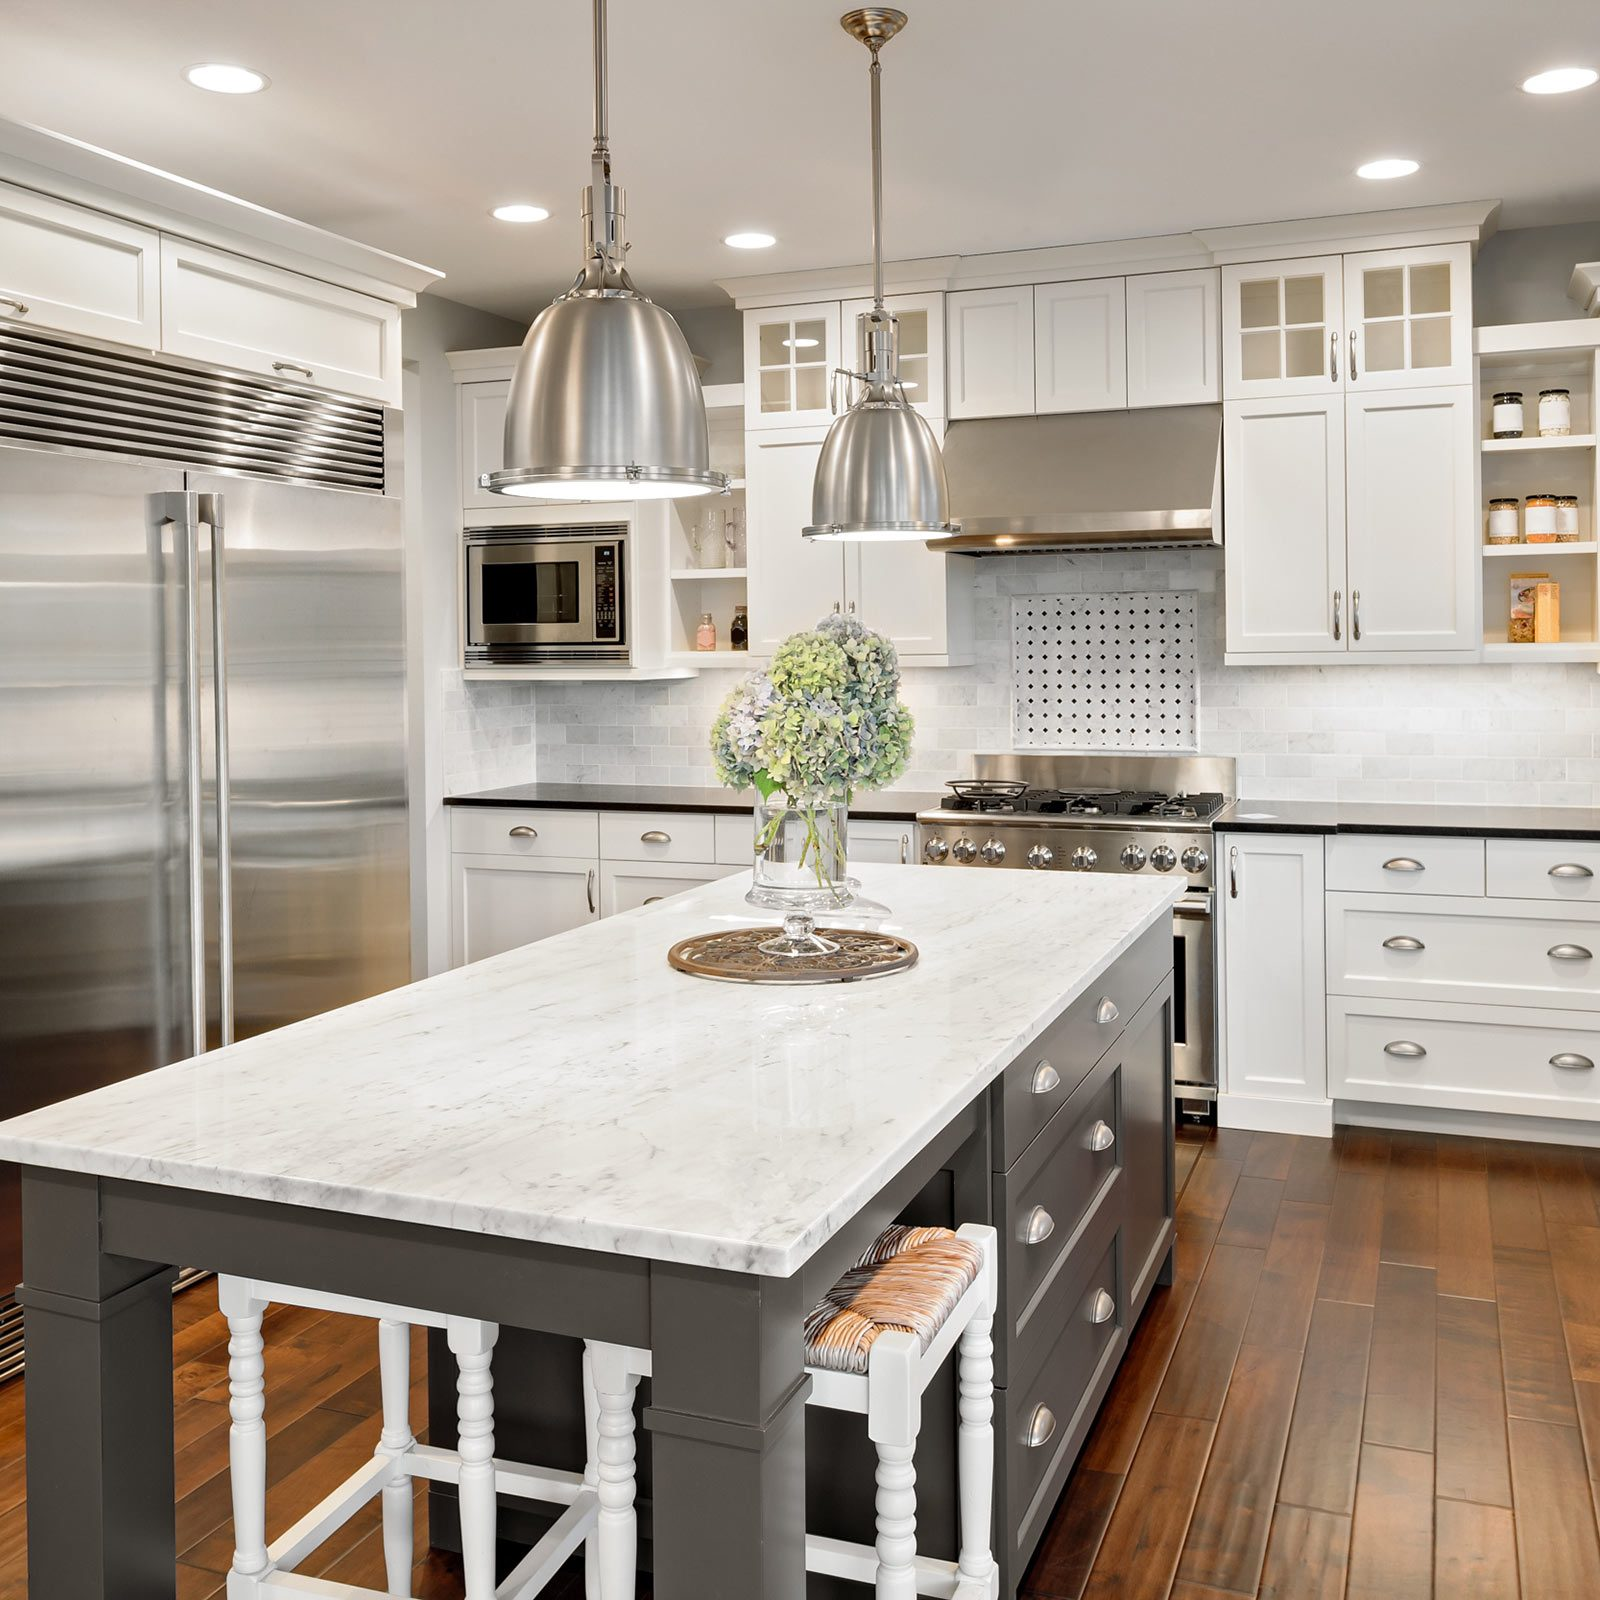 Cabinets | The Flooring Place